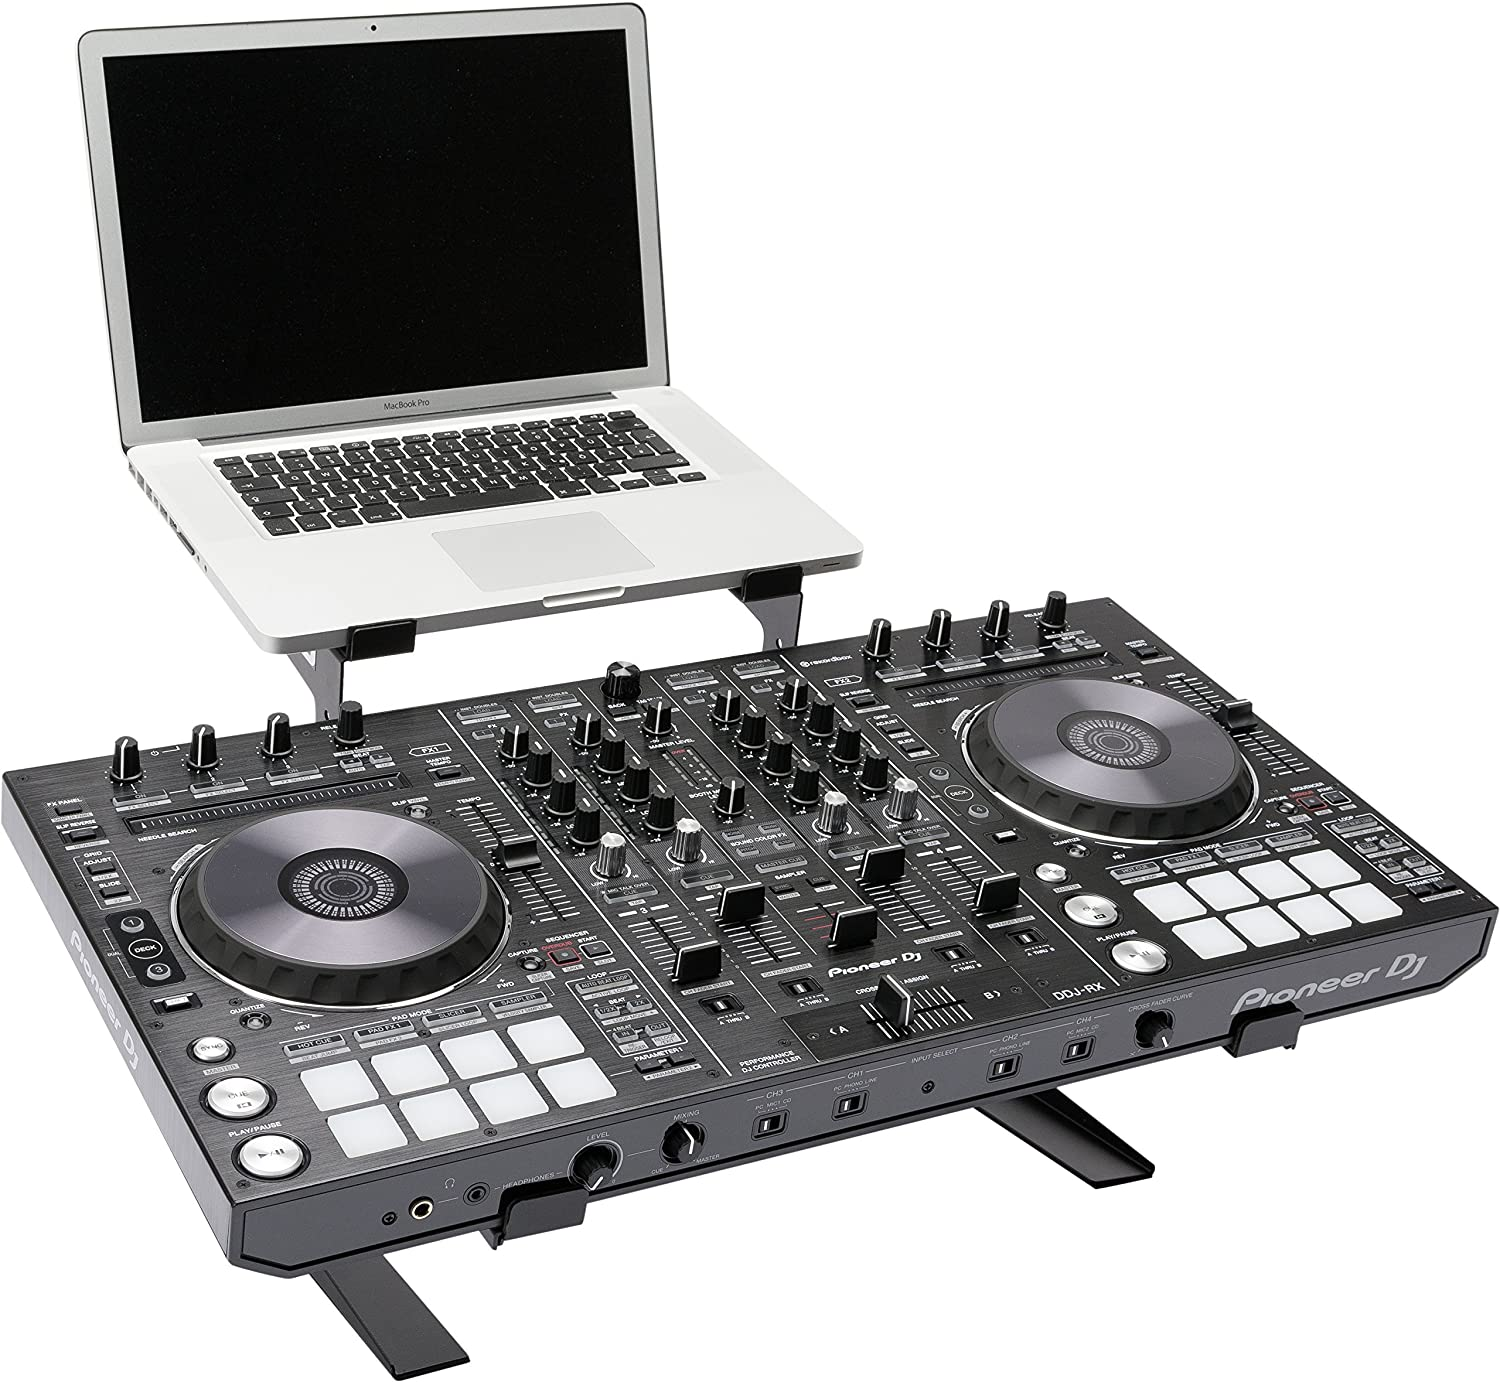 MAGMA 75541 Control Stand II - for DJ Controller and Laptops, Black